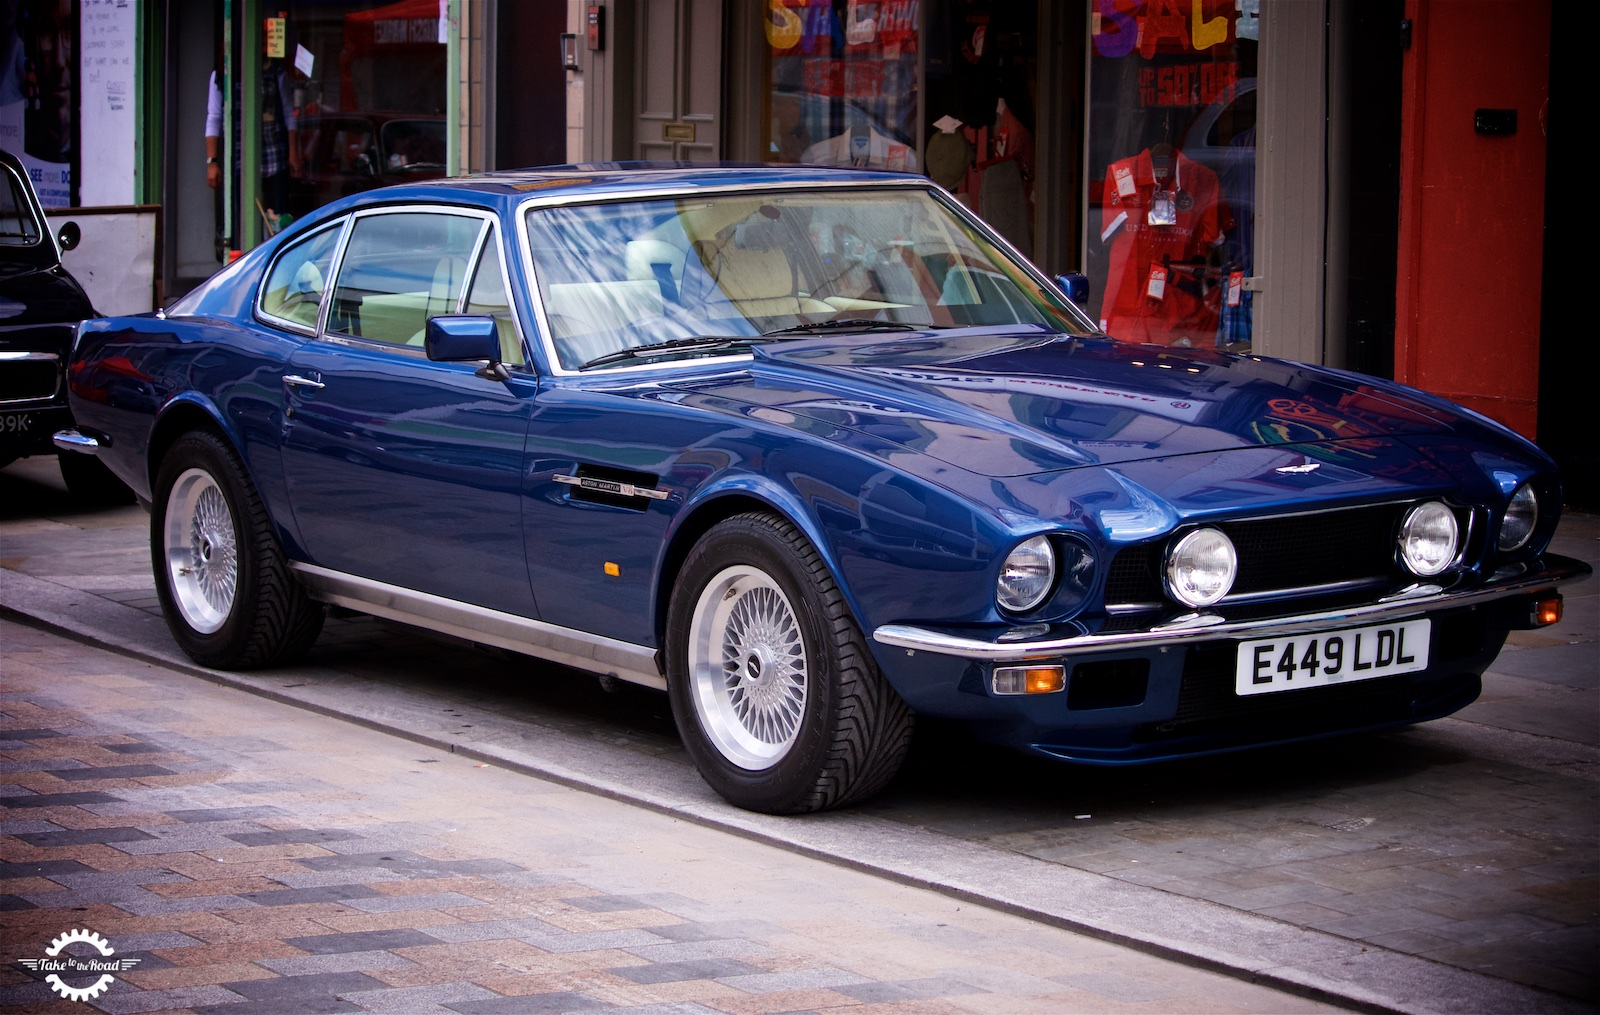 Is the new London ULEZ Charge a threat to classic cars?